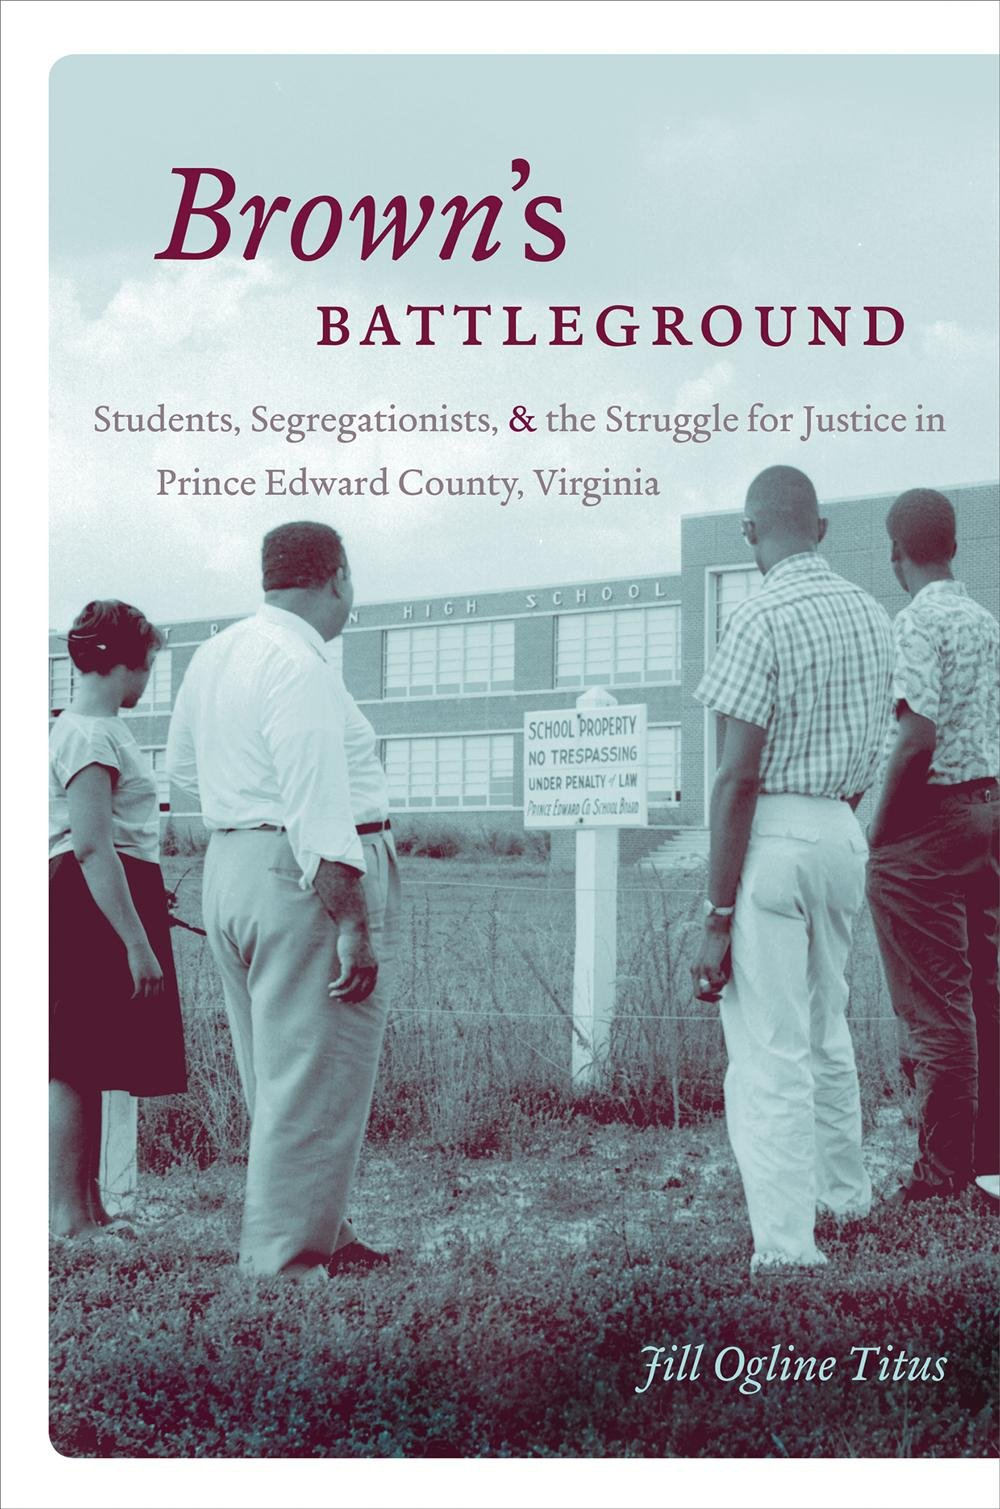 Brown's Battleground by Jill Titus-Click the link below for more information about this book